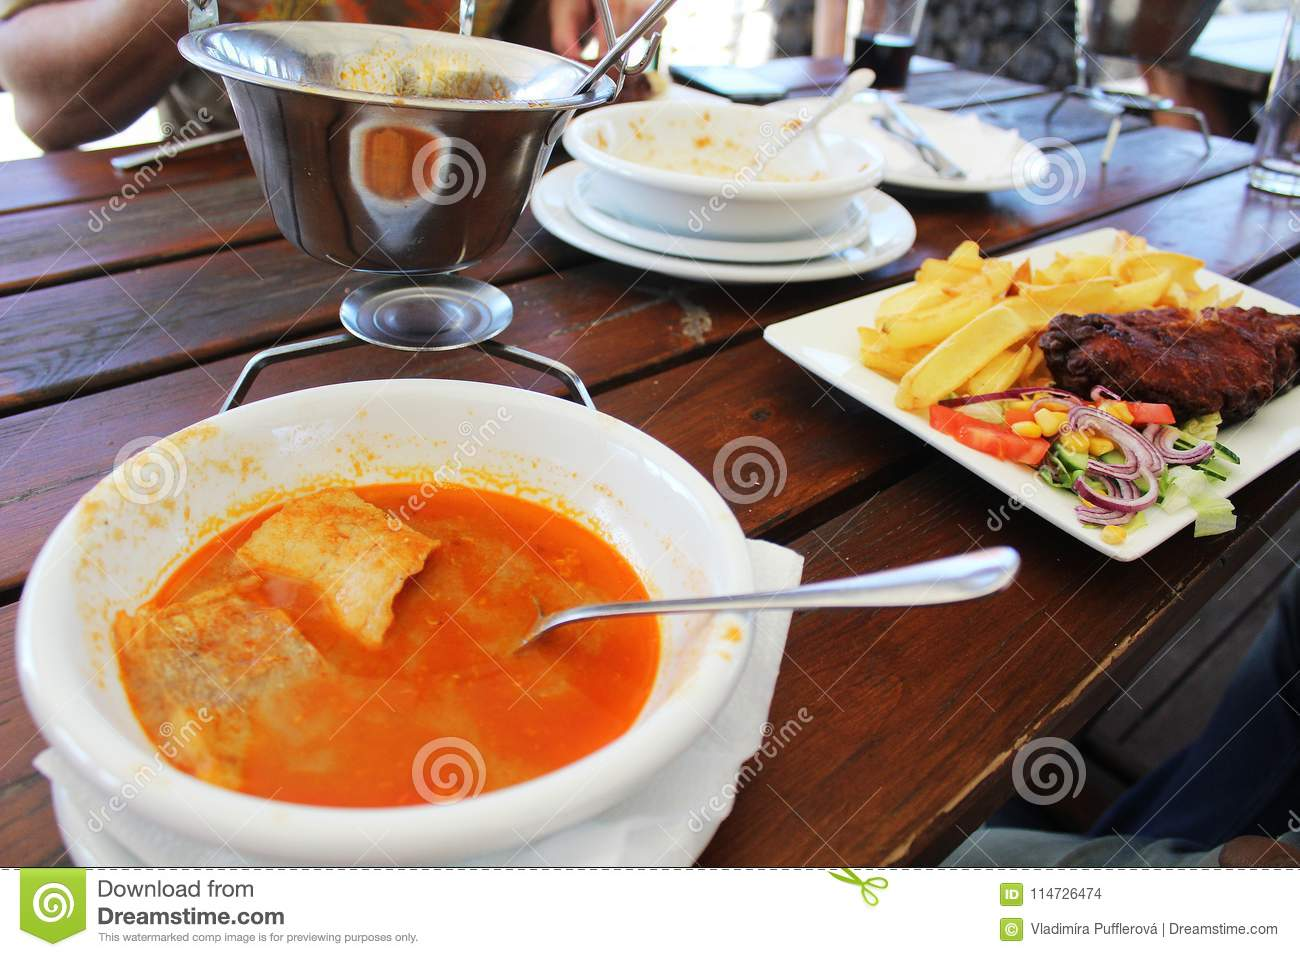 Dinner At Restaurant - Hungarian Fish Soup Named Halaszle And Fried Hake With French Fries And Vegetables Stock Photo - Image of entertainment ...